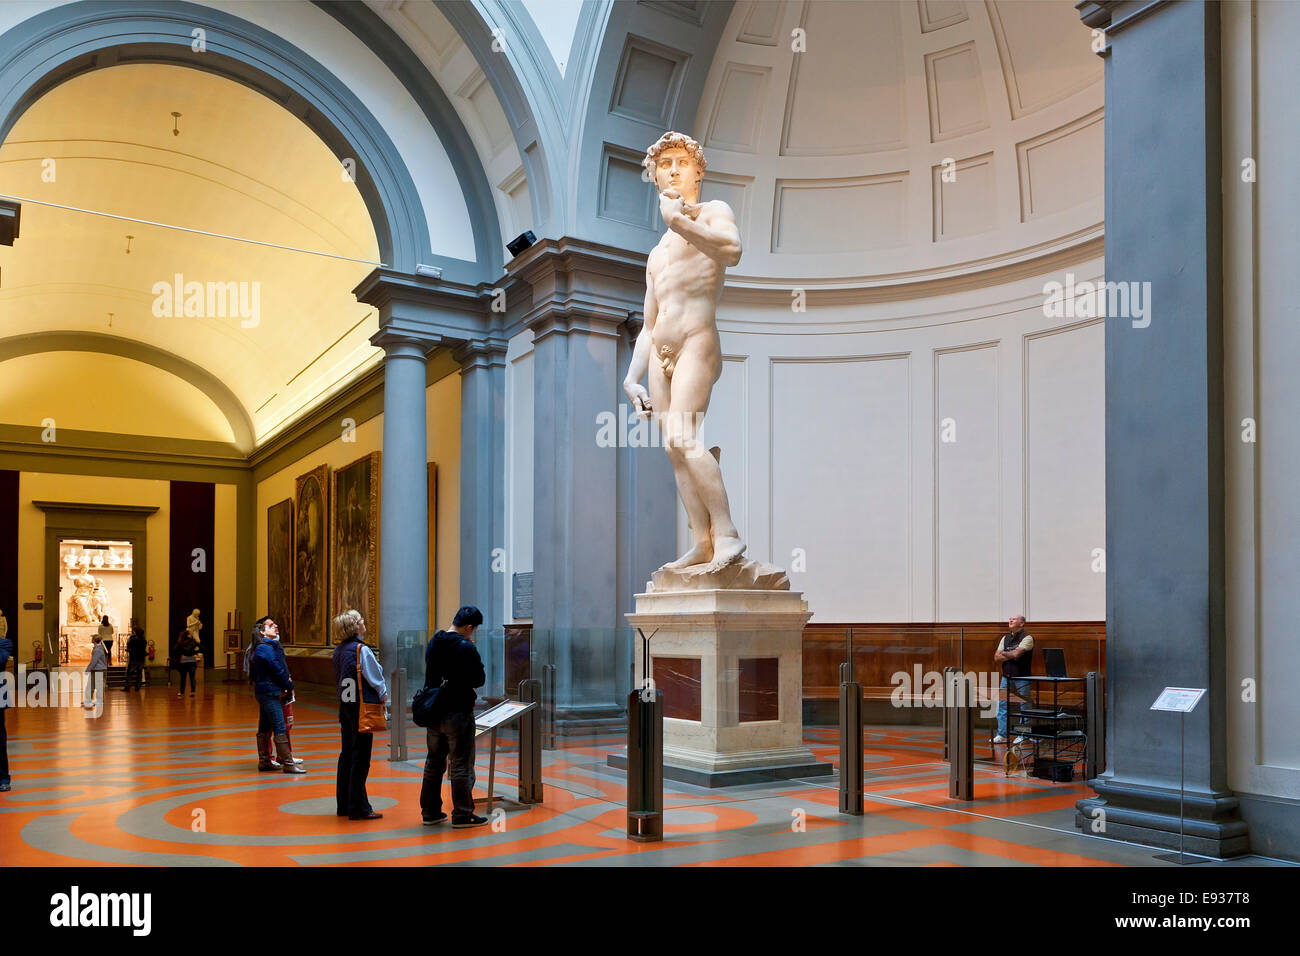 Europe, Italy, Florence, Accademia di Belle Arti, David by Michelangelo at the Galleria dell'Accademia - Stock Image